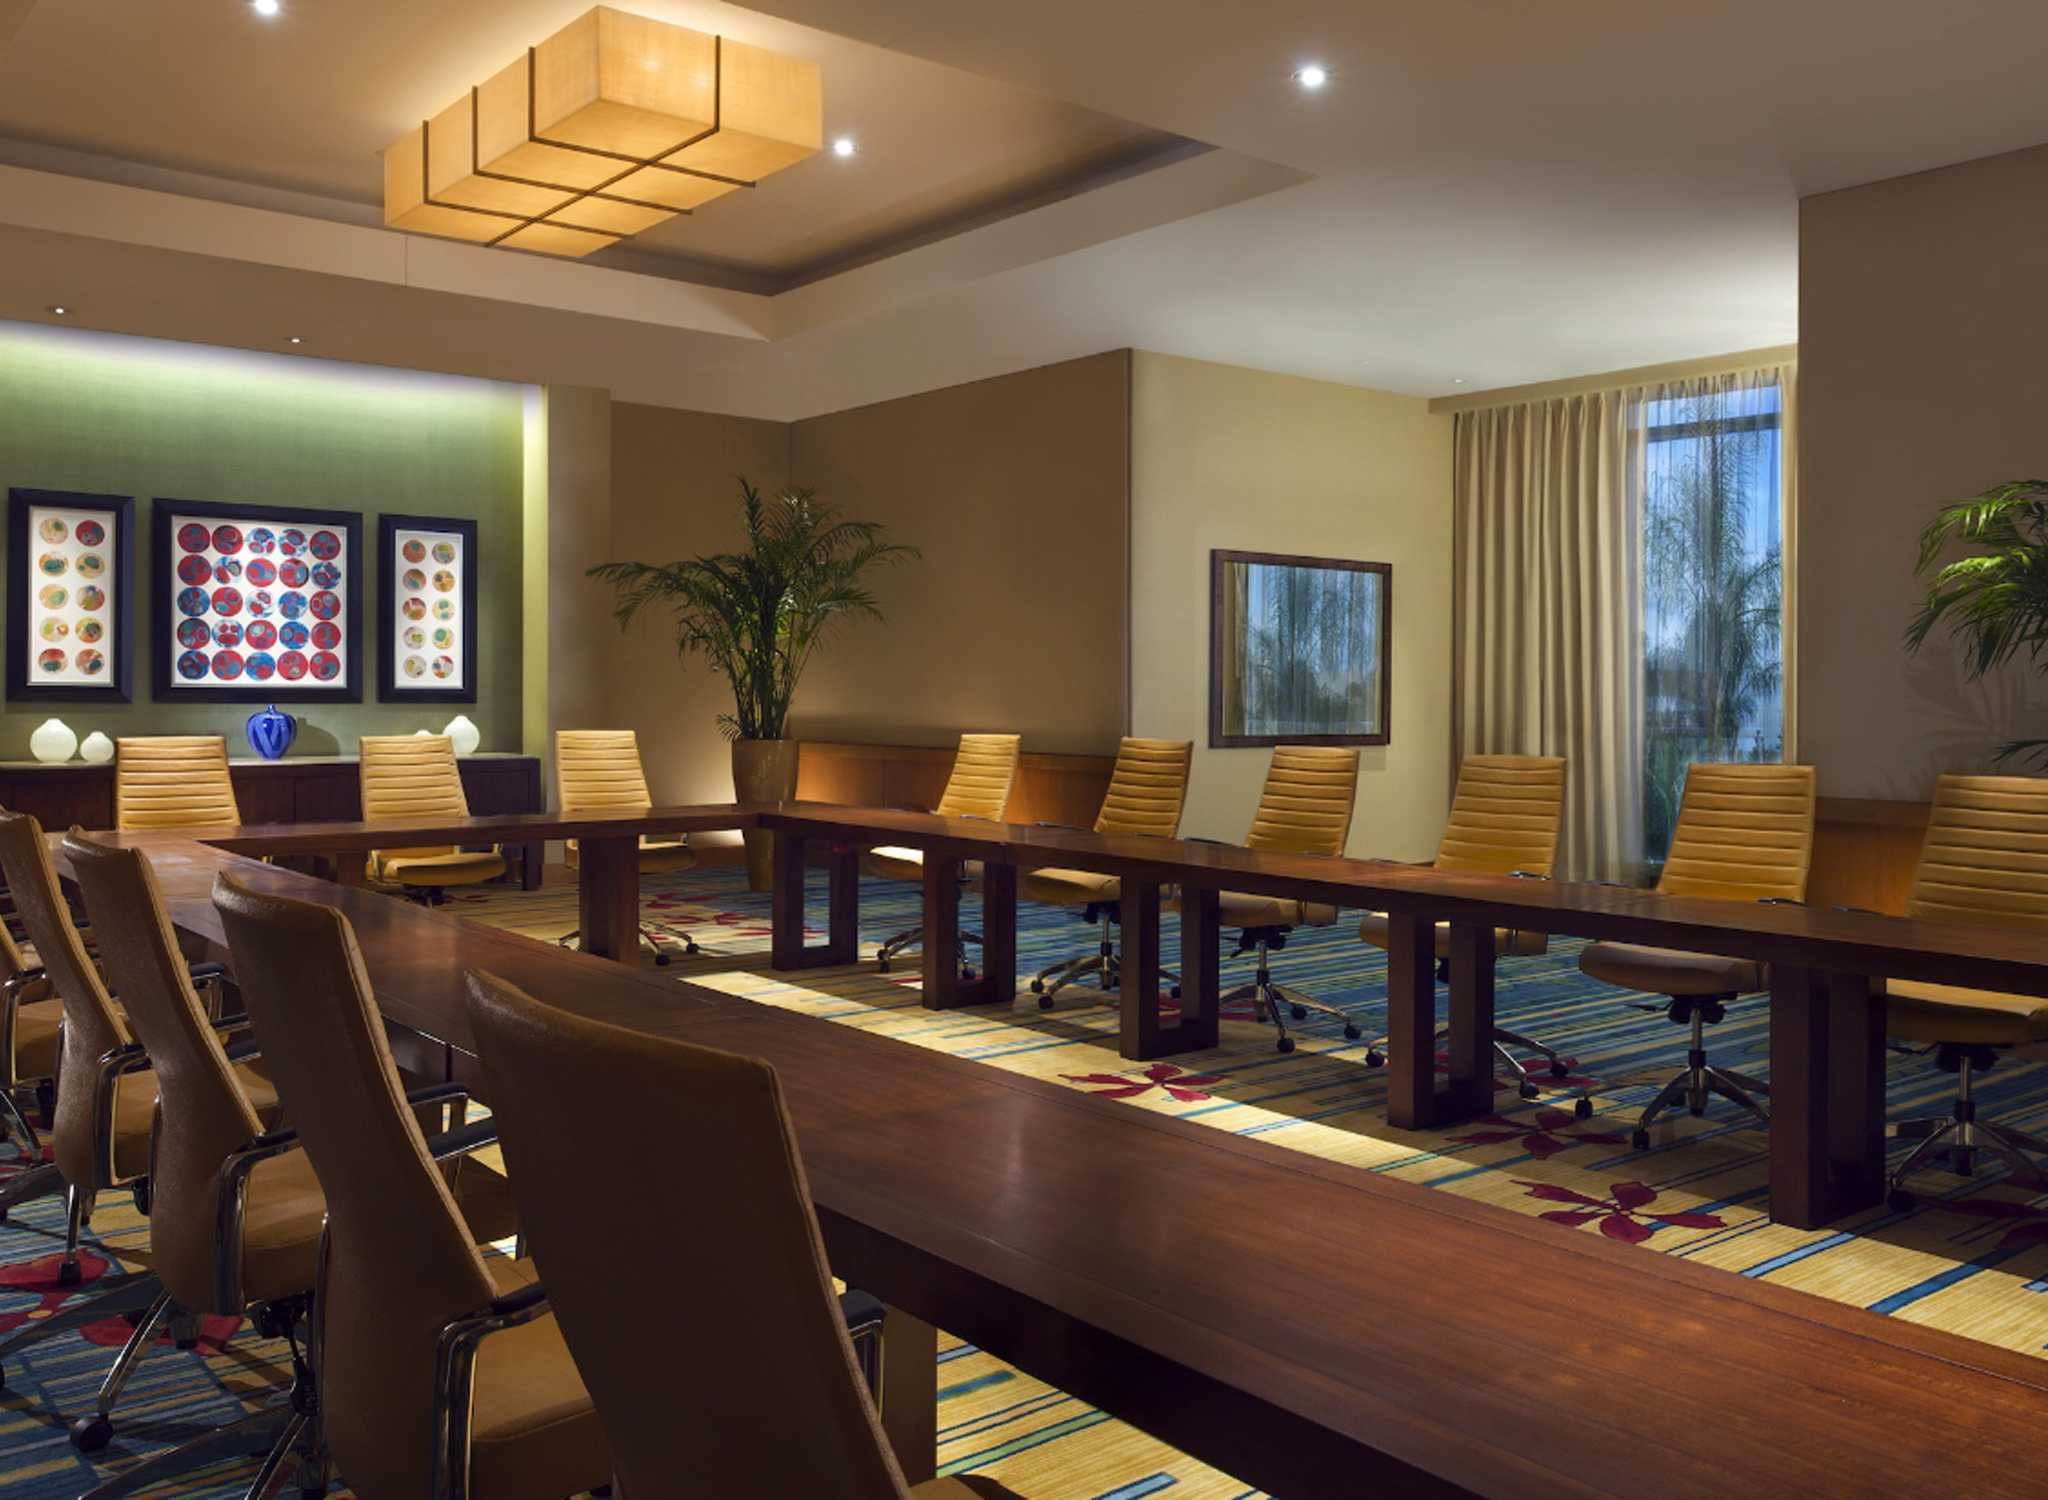 hilton international hotels Go hilton is available to employees at hilton corporate offices and its owned and managed properties.